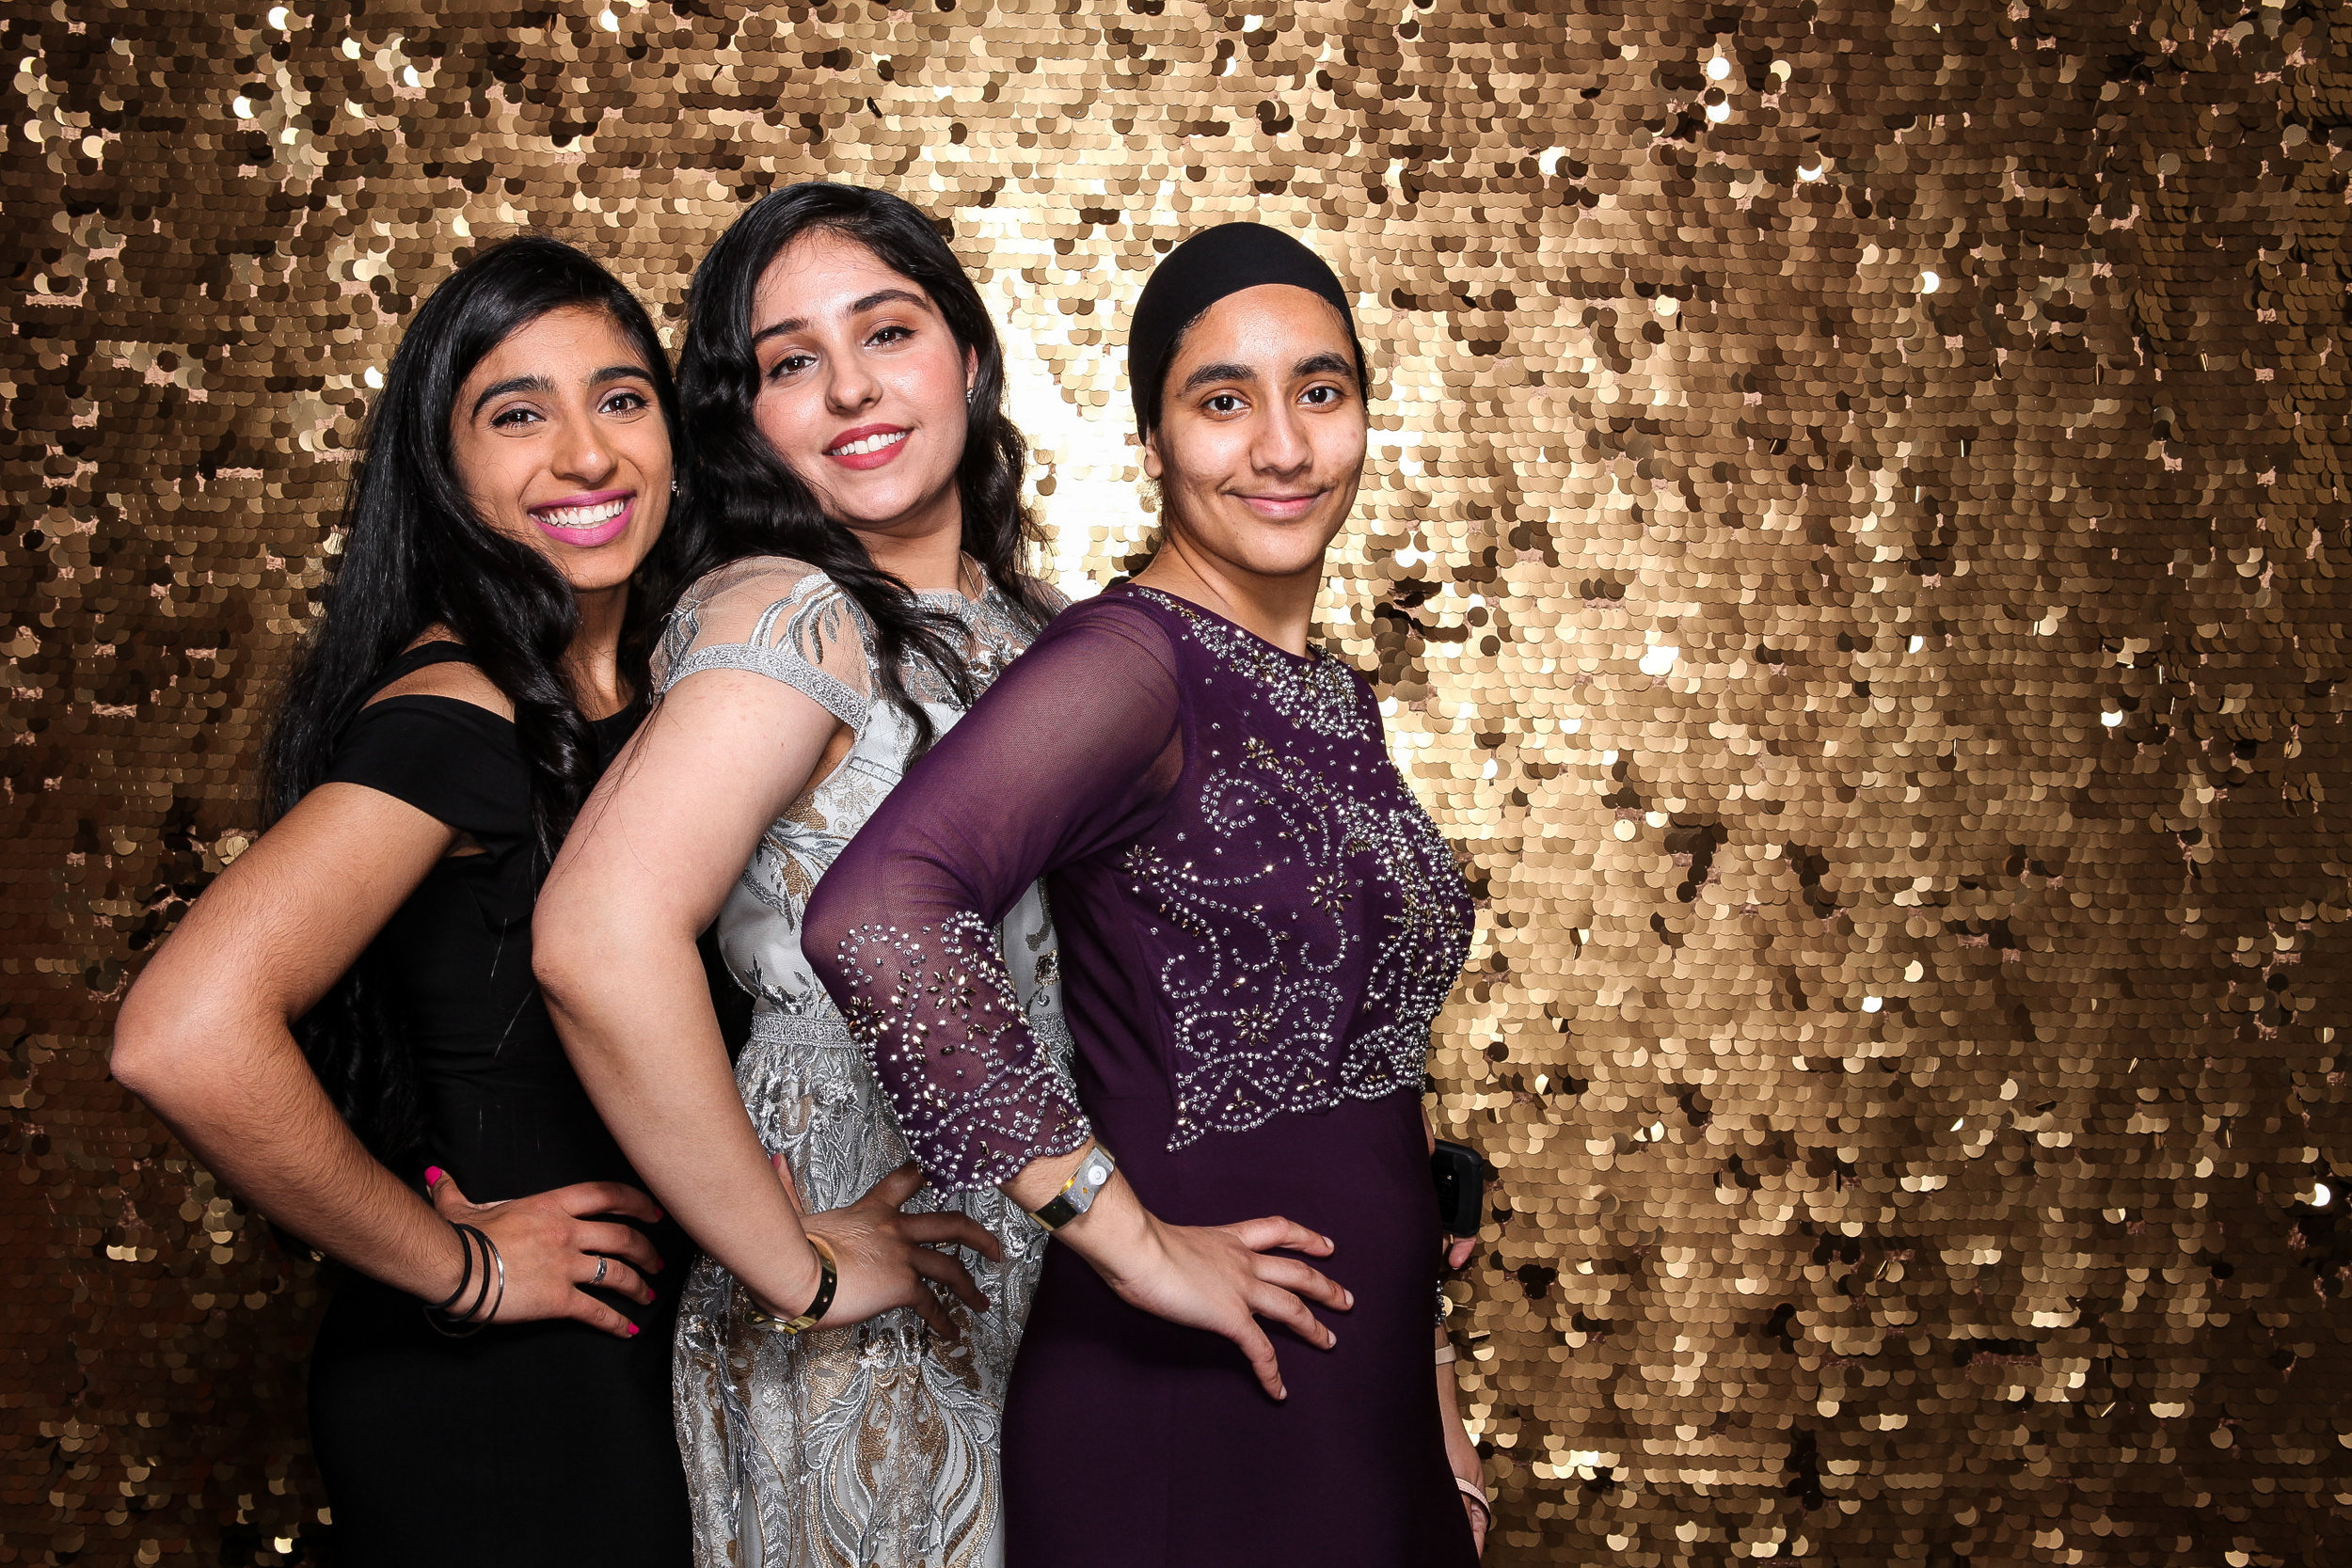 20190503_Adelphi_Senior_Formal-077.jpg